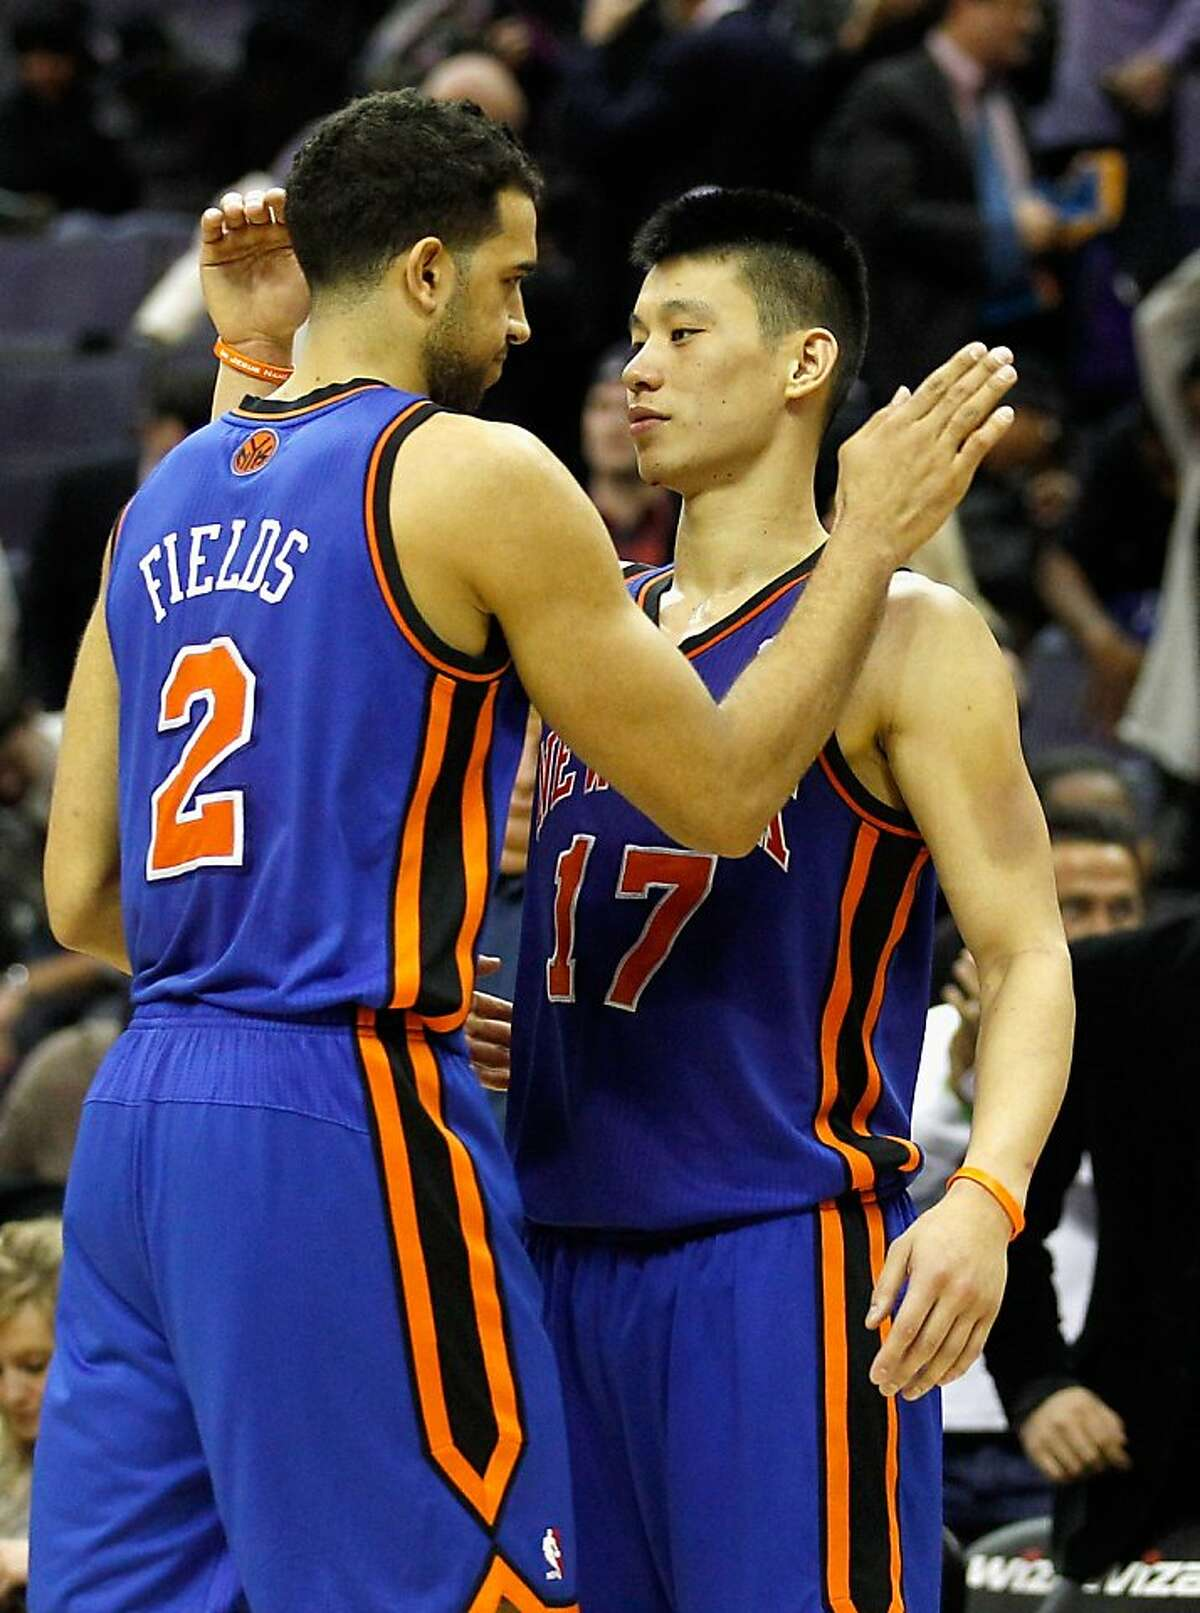 Landry Fields #2 of the New York Knicks and Jeremy Lin #17 celebrate after the Knicks defeated the Washington Wizards at Verizon Center on February 8, 2012 in Washington, DC.